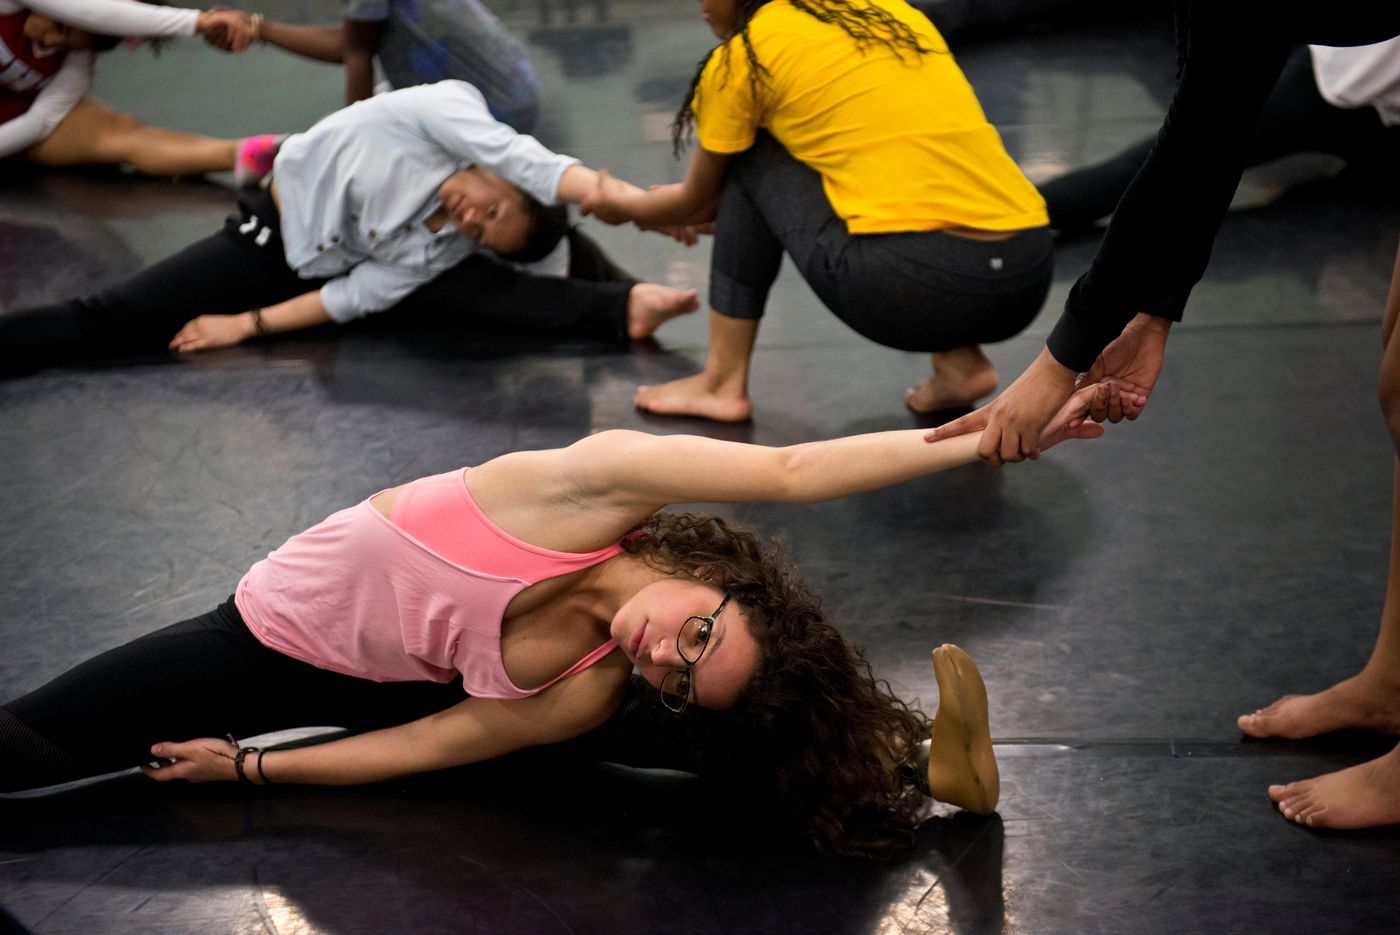 Taylor Haines stretches with others in East High School's Dance Contempo at the start of a rehearsal on Thursday, October 15, 2015.